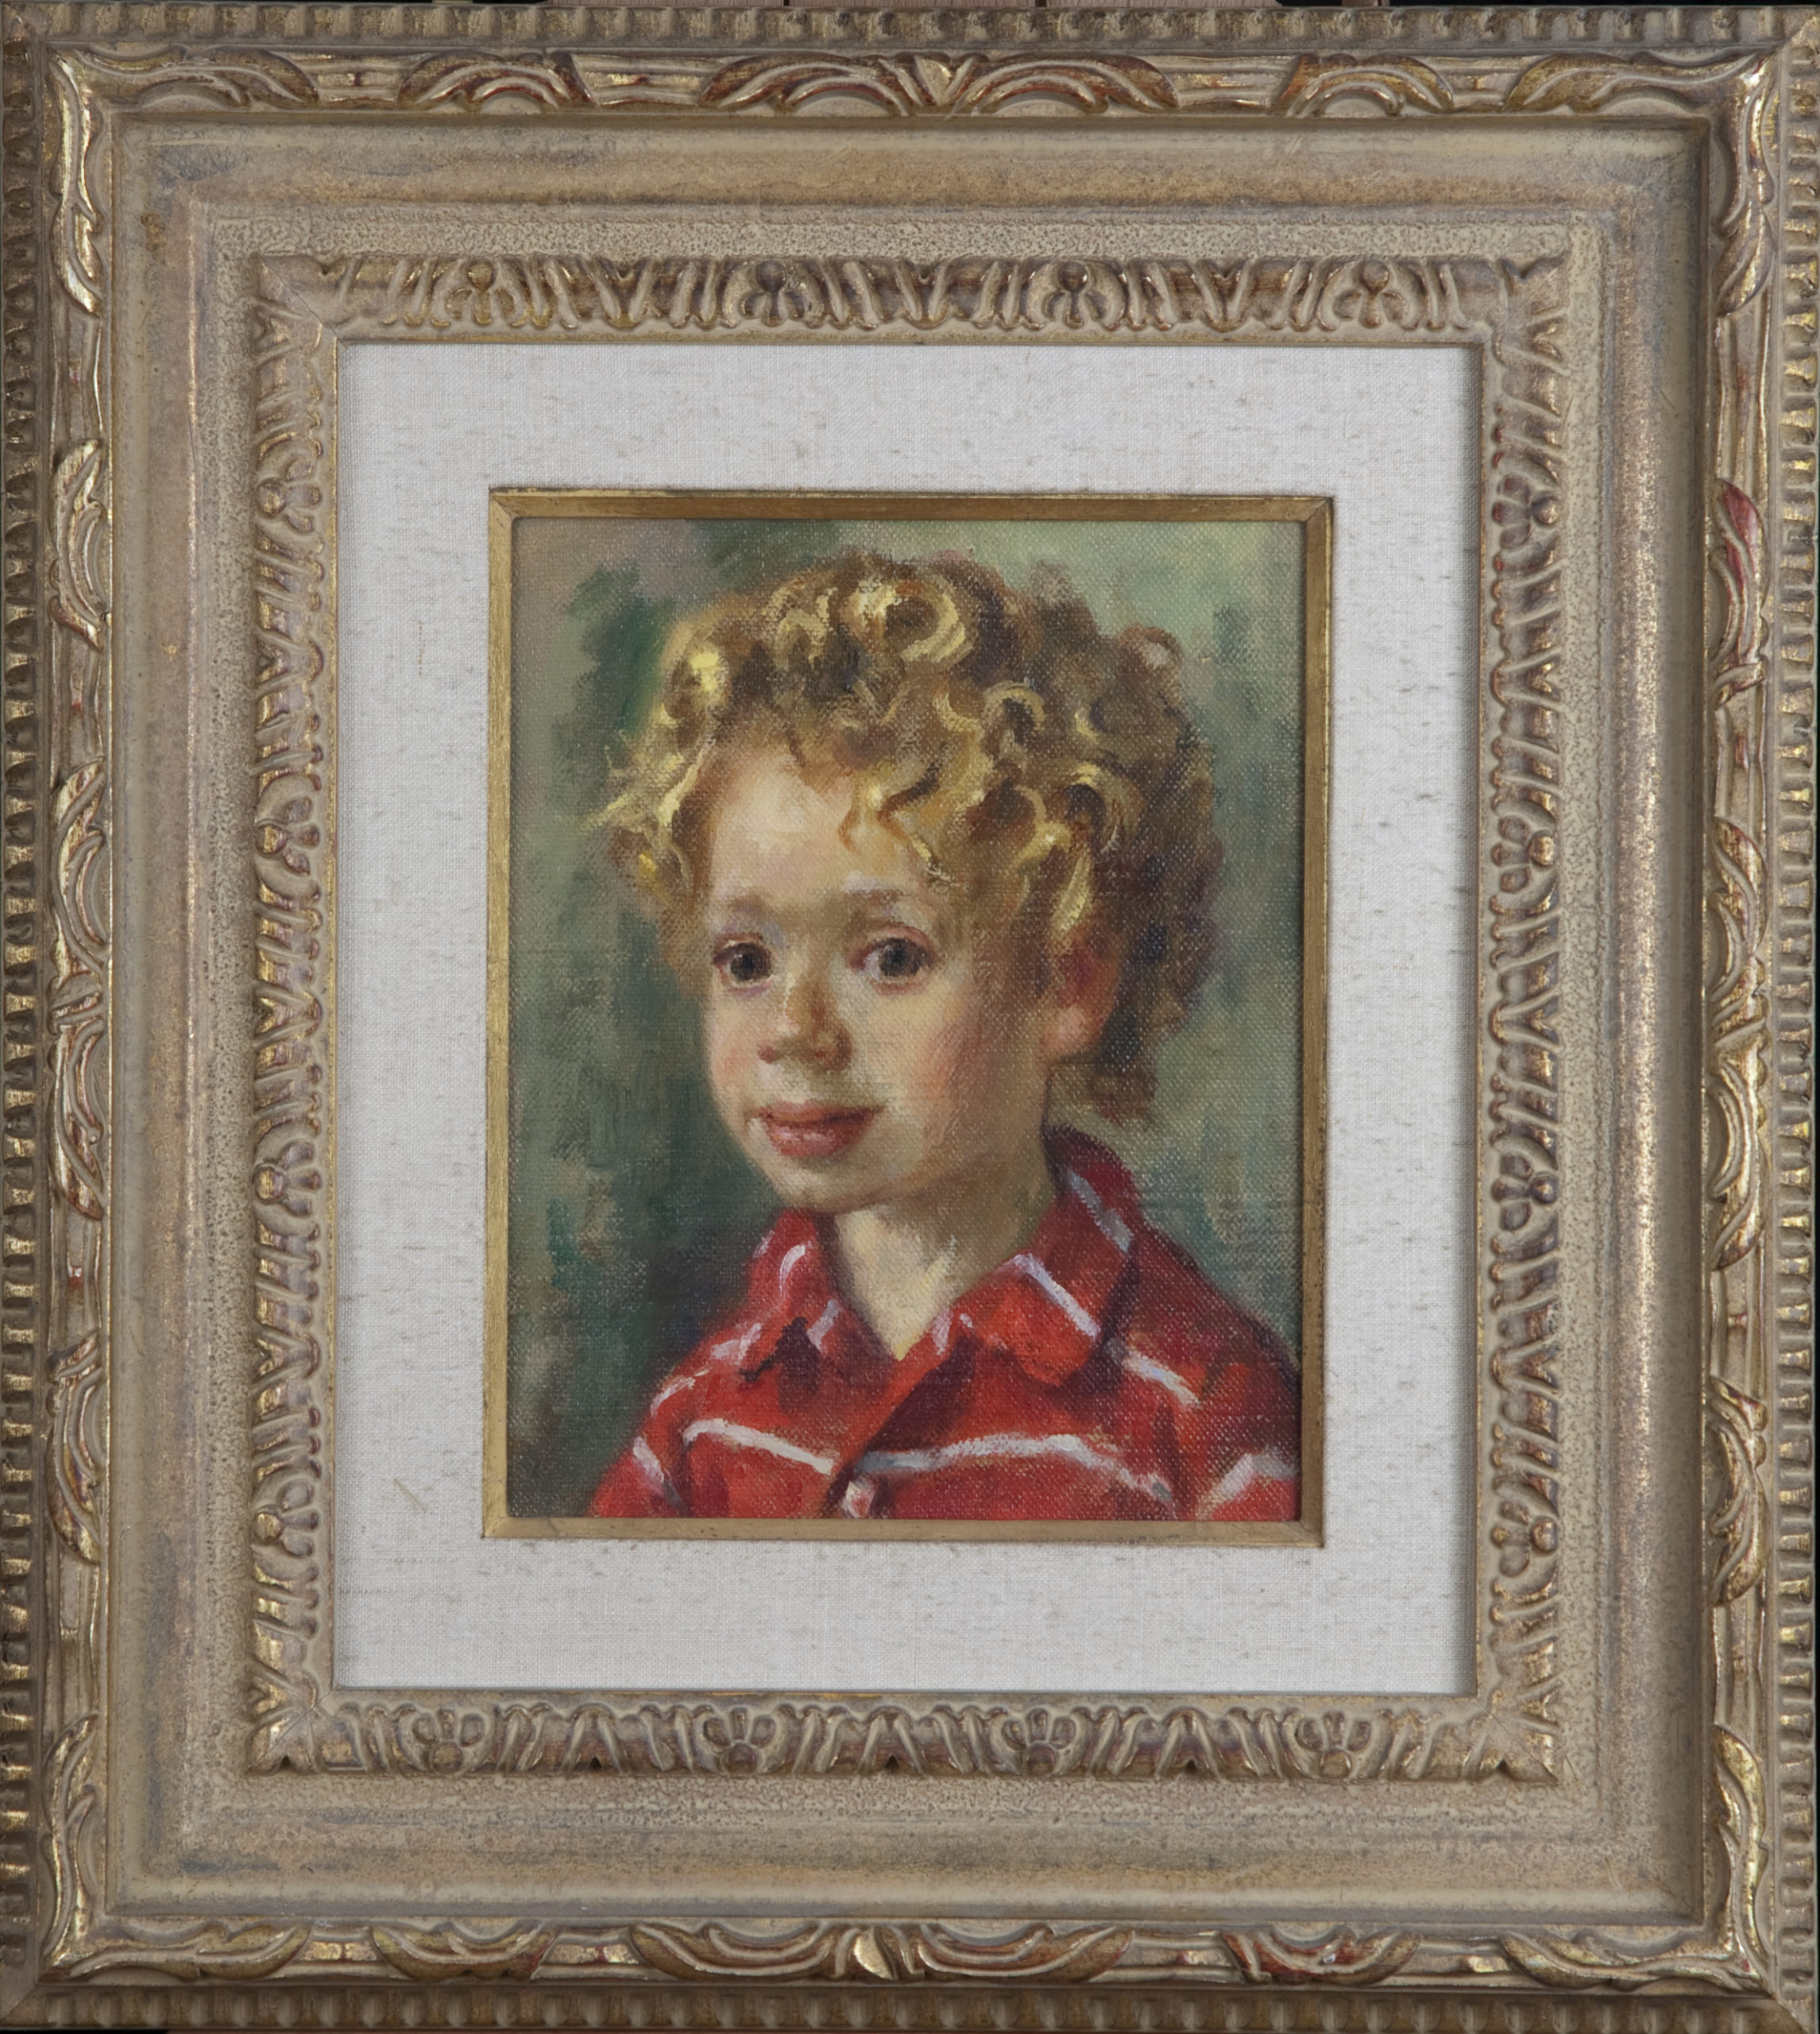 059 Arie age 3 1969 - Oil on Canvas - 8 x 10 - Frame: 17.5 x 19.5 x 2.5